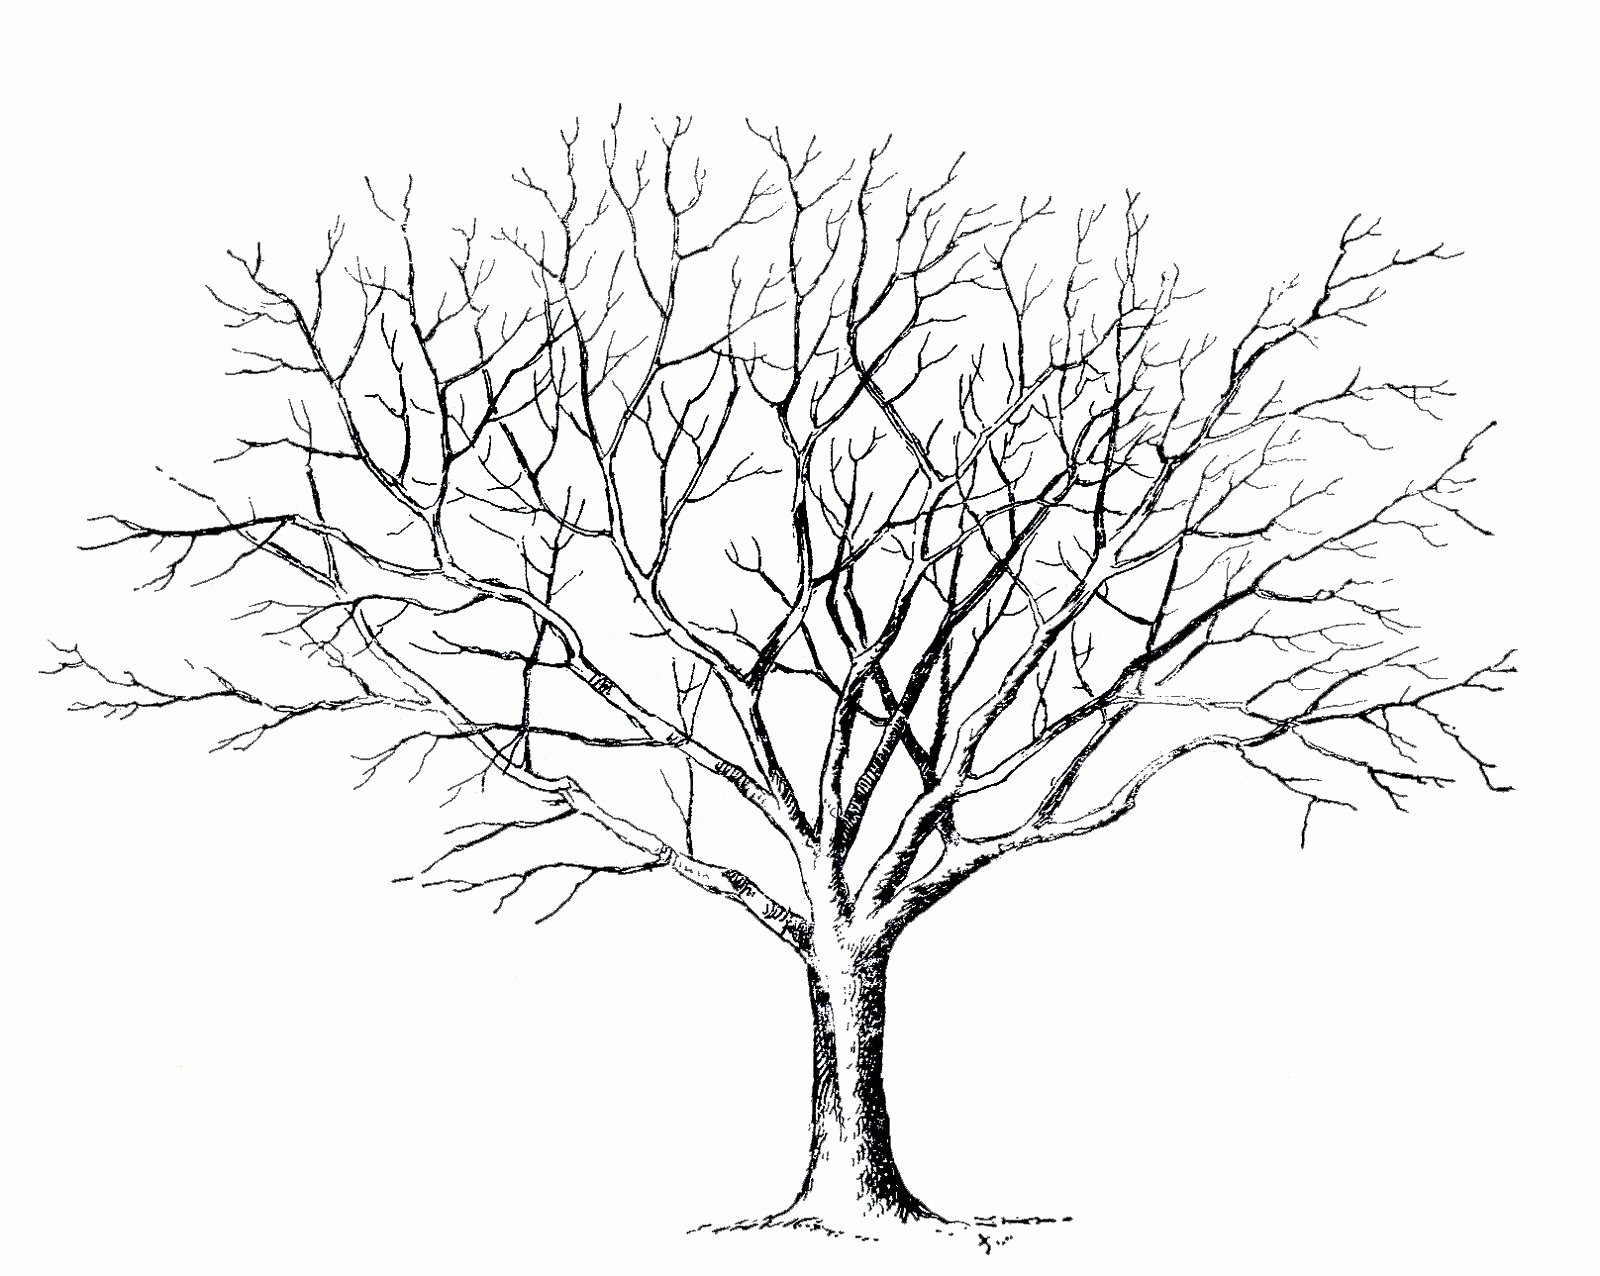 How to Draw A Simple Tree without Leaves Luxury Tree Drawing No Leaves at Getdrawings